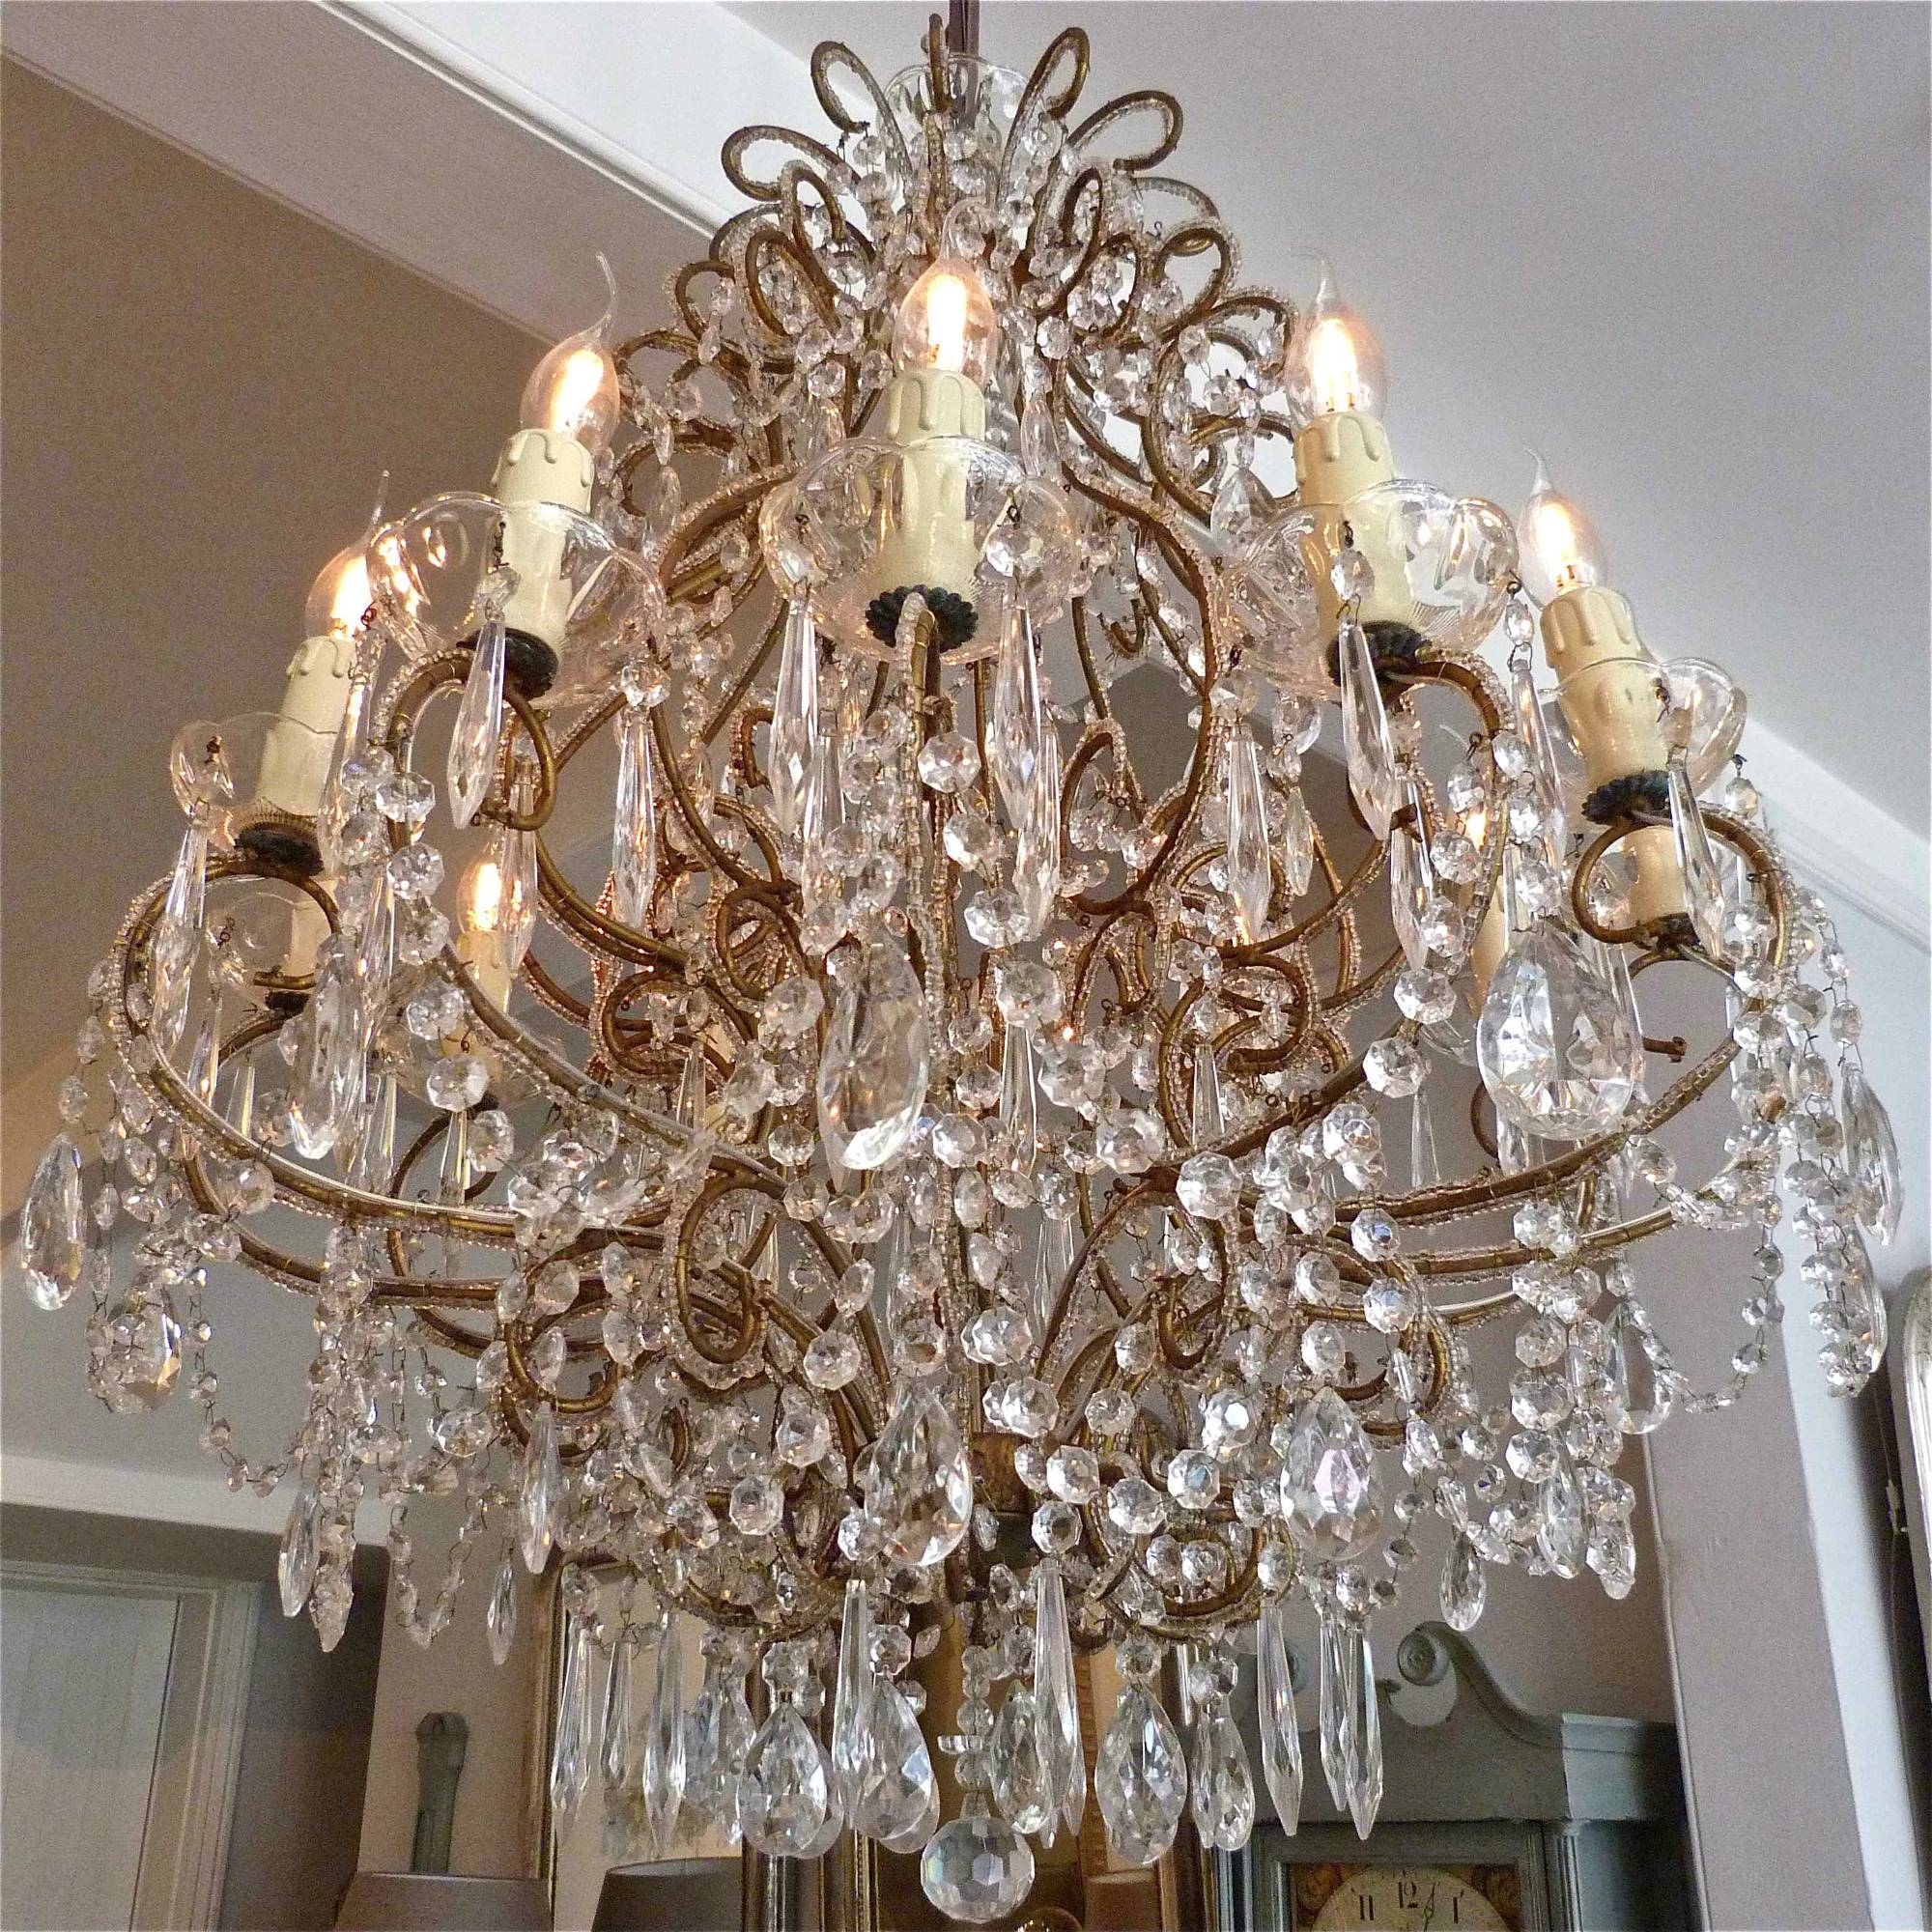 Pair of italian chandeliers trendfirst pair of italian chandeliers aloadofball Images